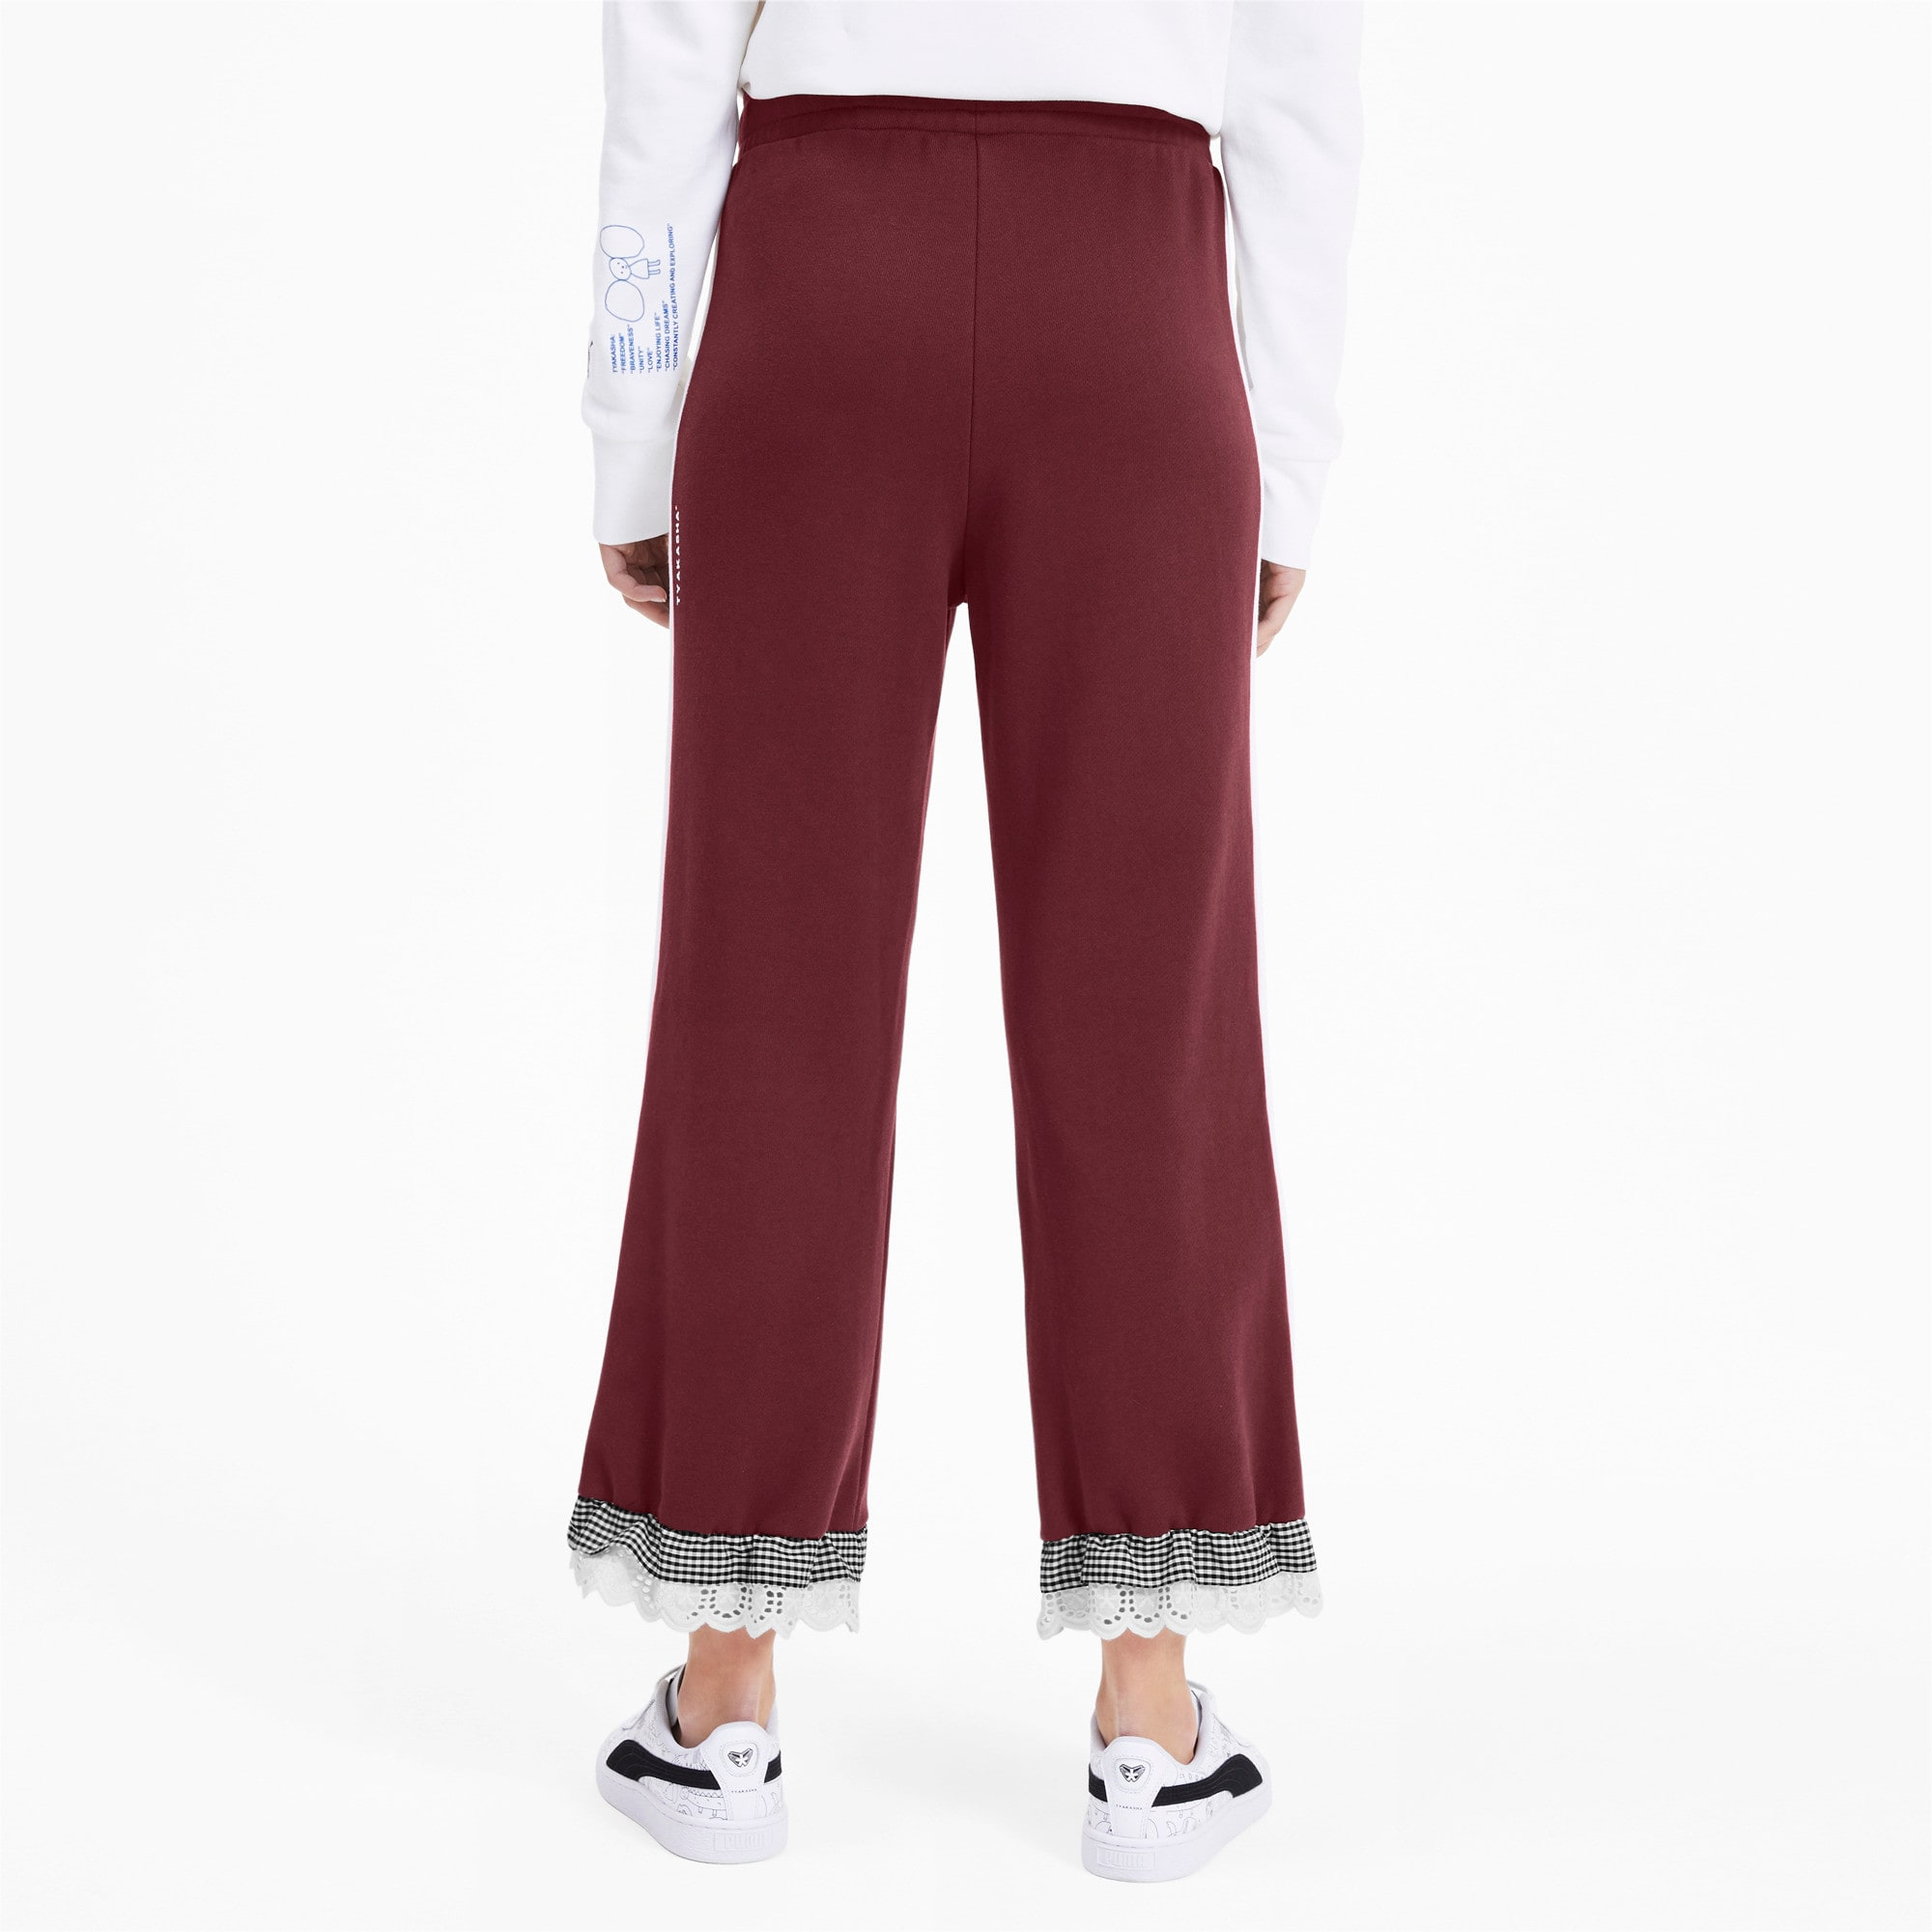 Thumbnail 3 of PUMA x TYAKASHA Women's Culottes, Vineyard Wine, medium